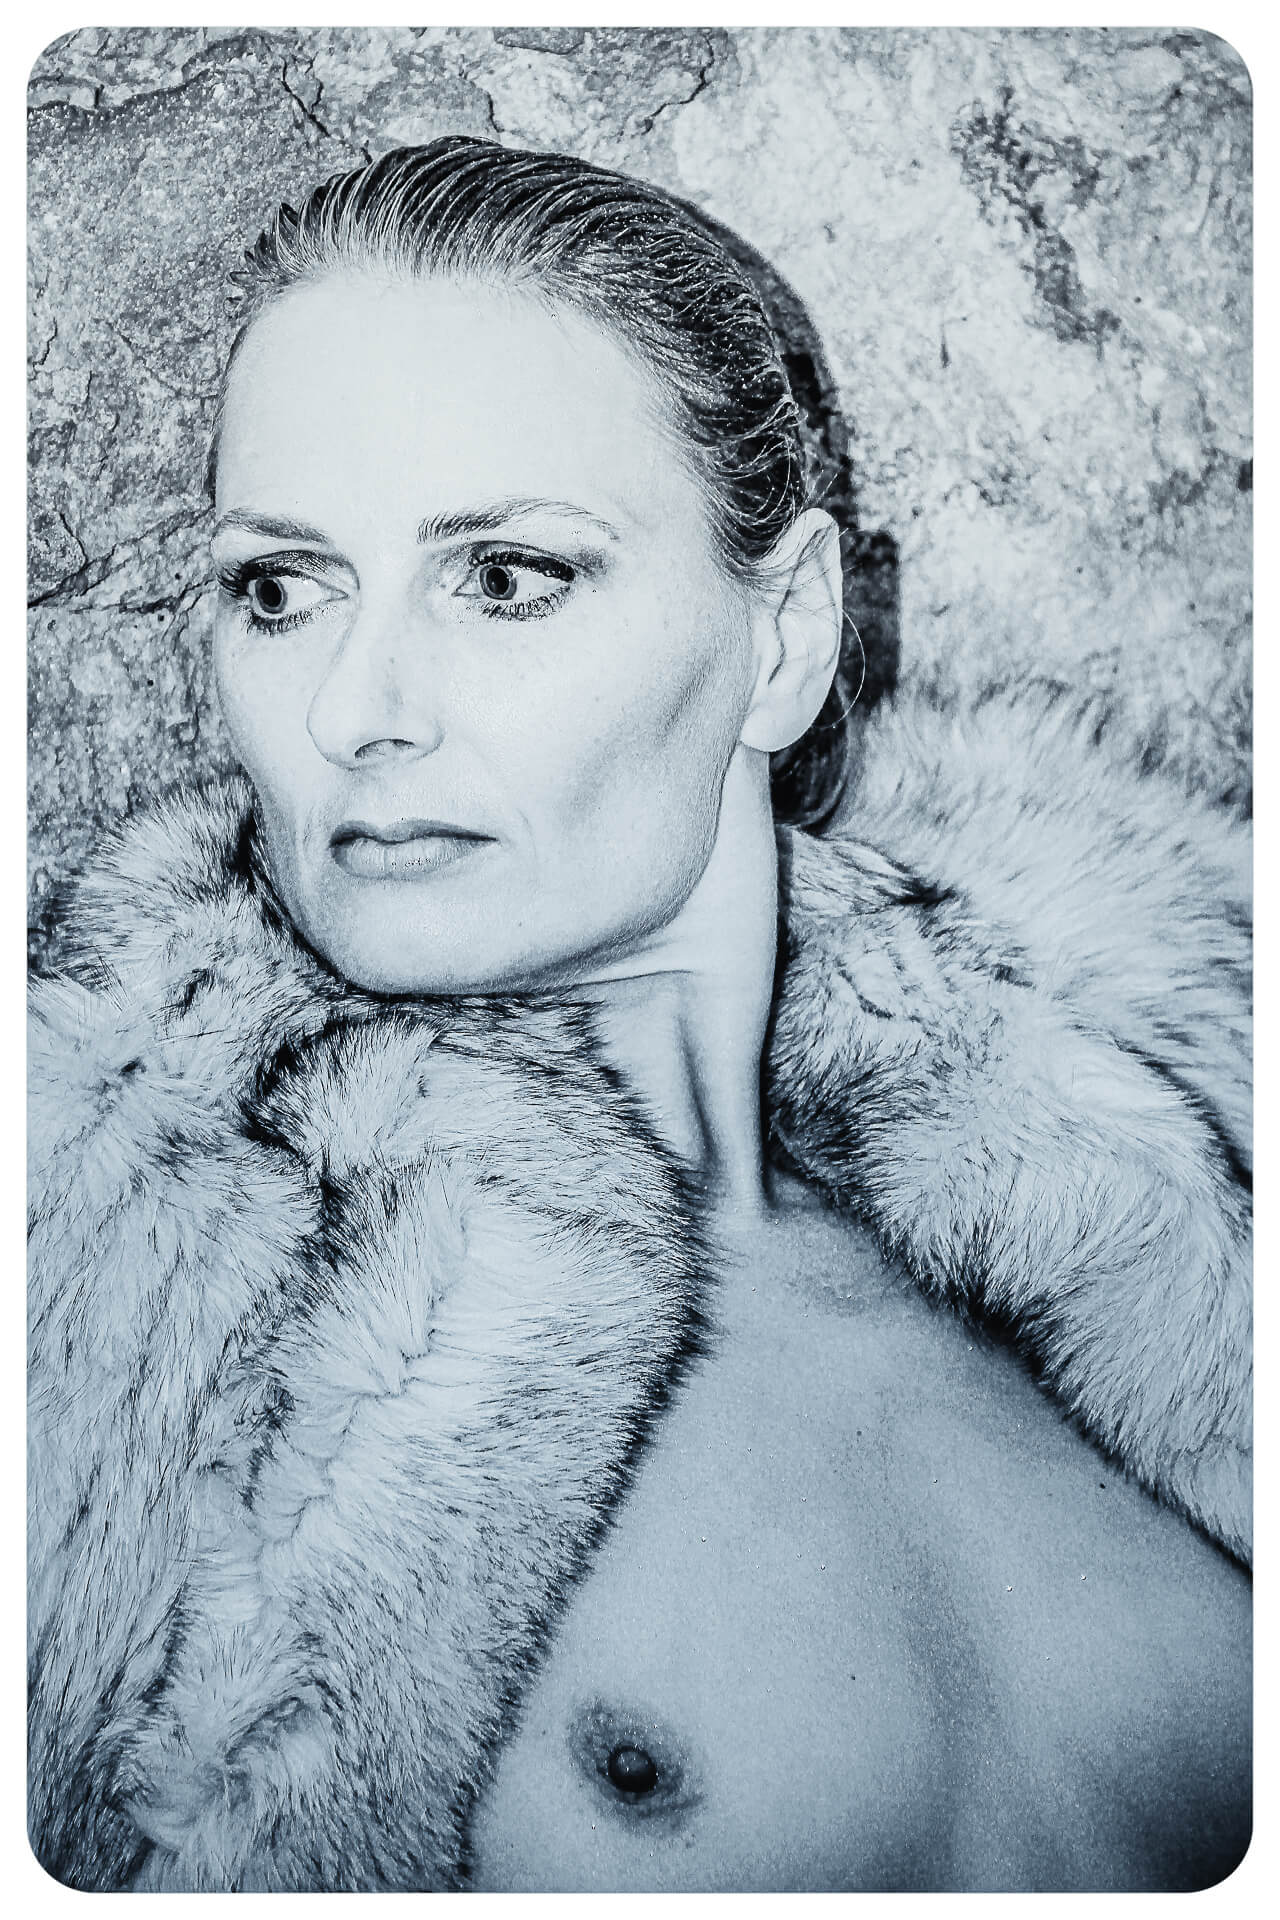 A harsh silvery Black & White 1960's style chest up image of Liz as she leans against a cave wall. She wears nothing save a fake fur coat pulled tight around her neck (but open at the chest allowing her breasts to show) as she looks away from the camera.